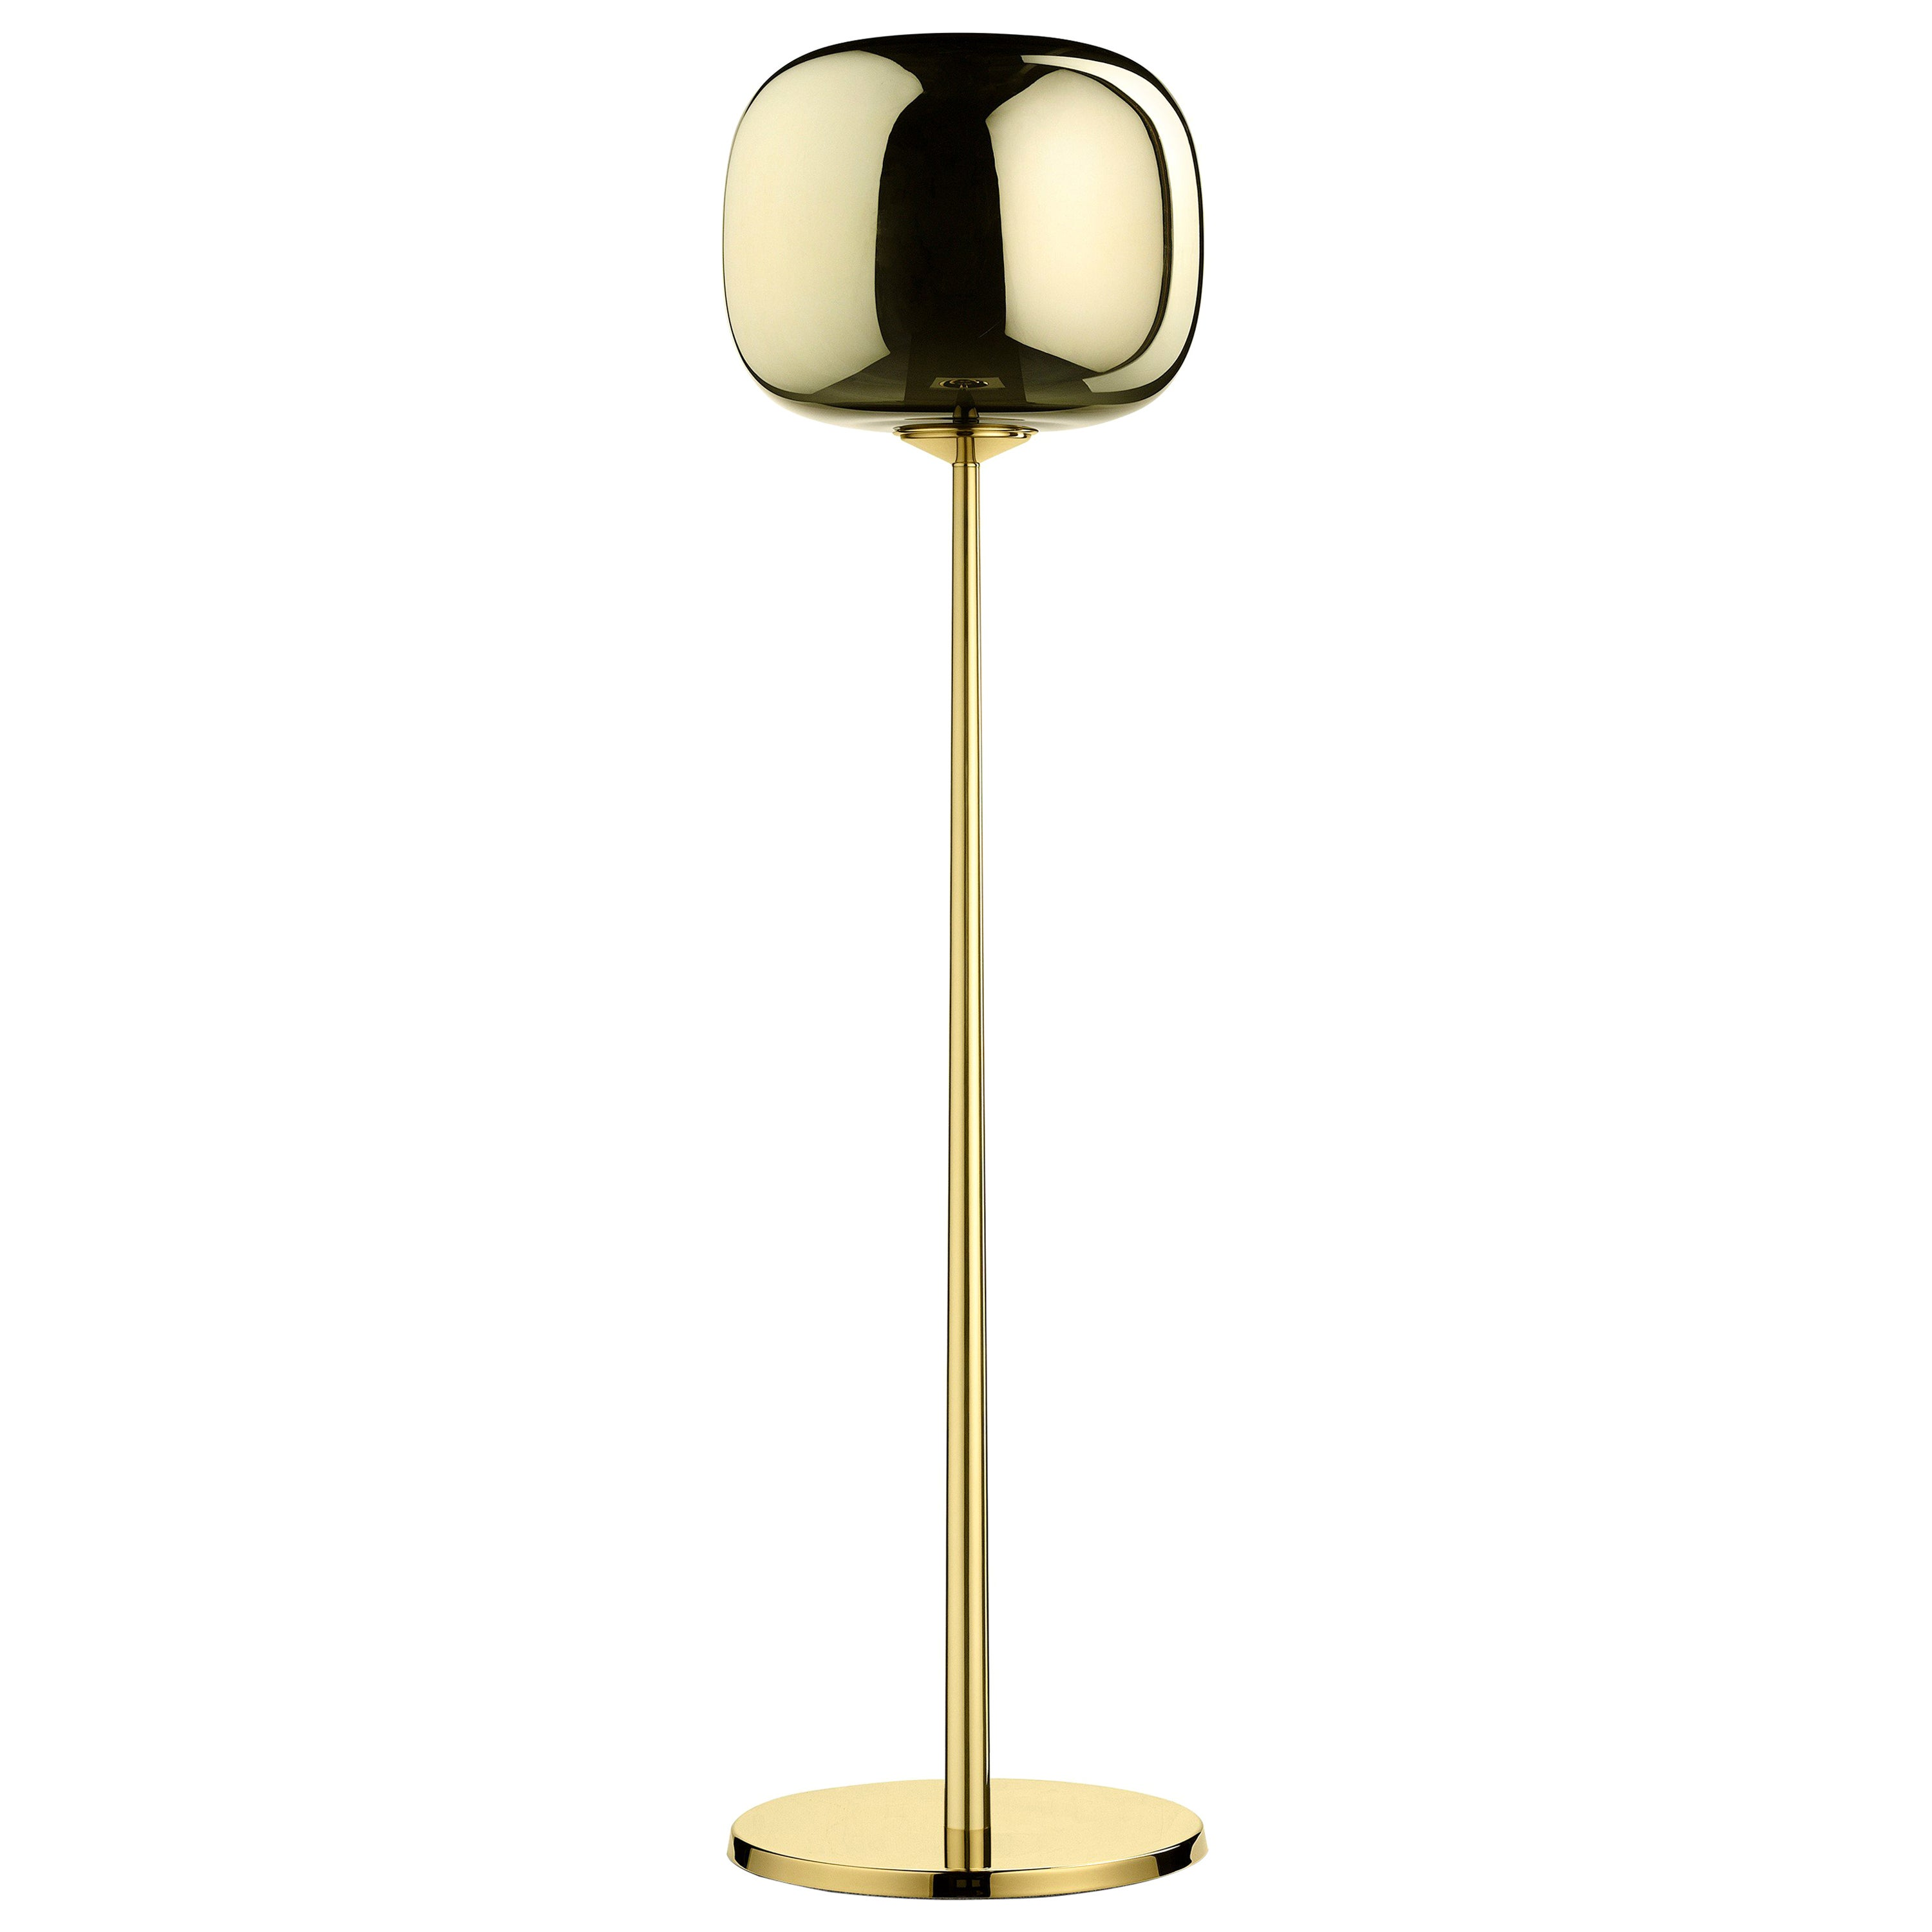 Ghidini 1961 Short Dusk Dawn Floor Lamp in Brass and Metallic Glass by Branch